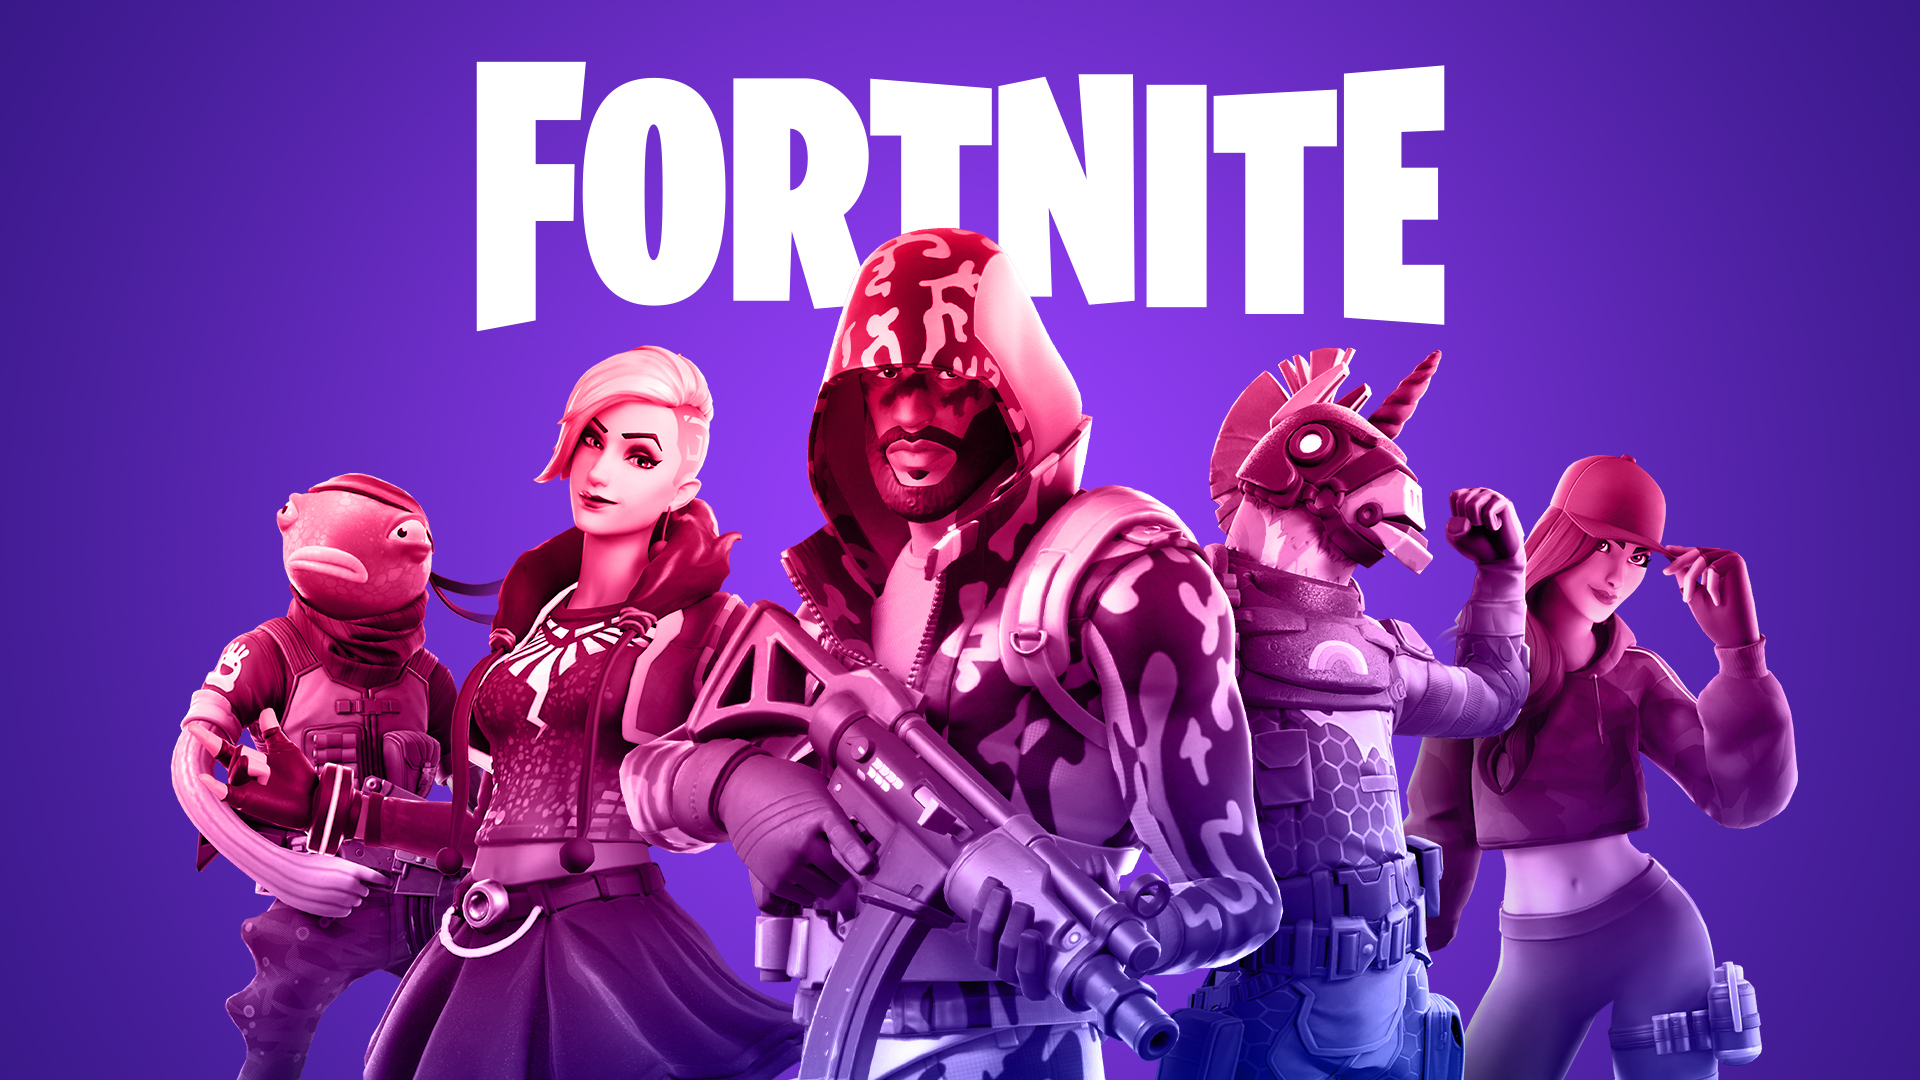 Fortnite Competitive 2021 (Credit: Epic Games)